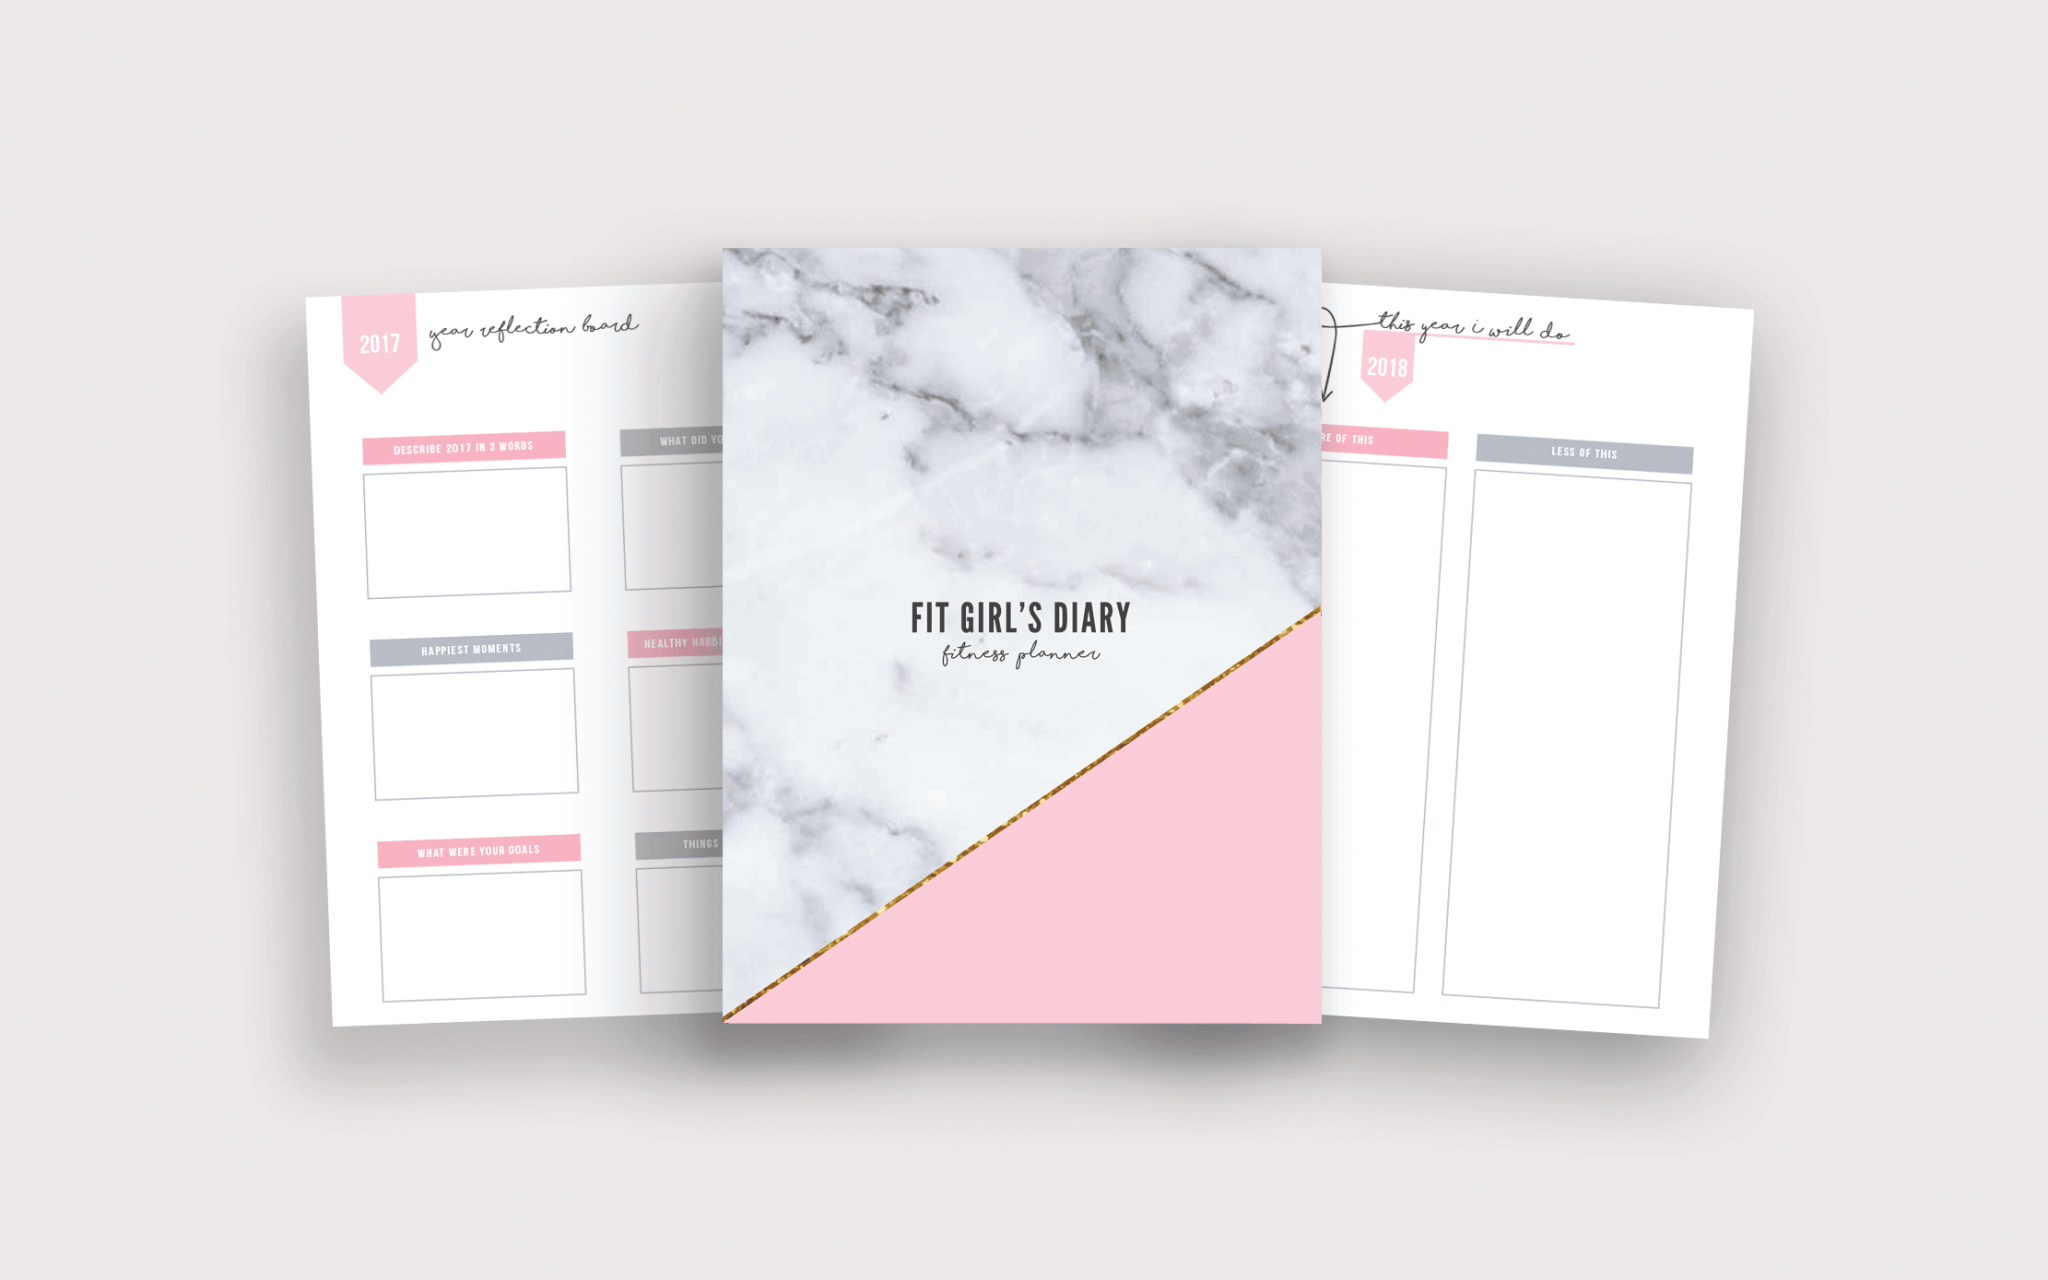 image regarding Fitness Planner Printable identify 2018 Health Planner Printable Package - Your Planner Towards